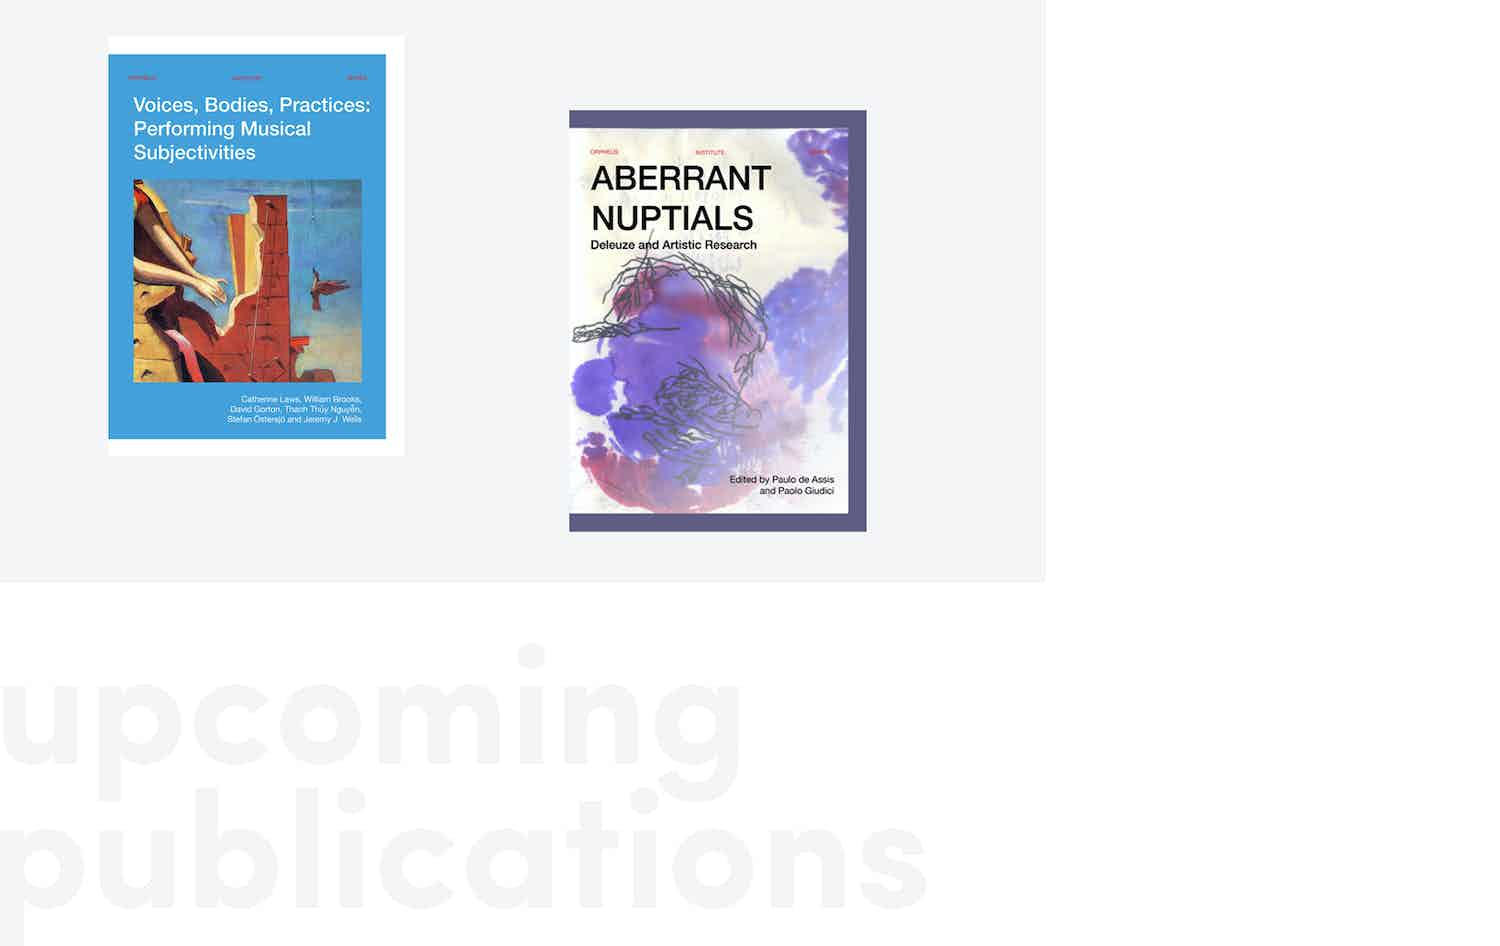 Upcoming Publications Fall 2019